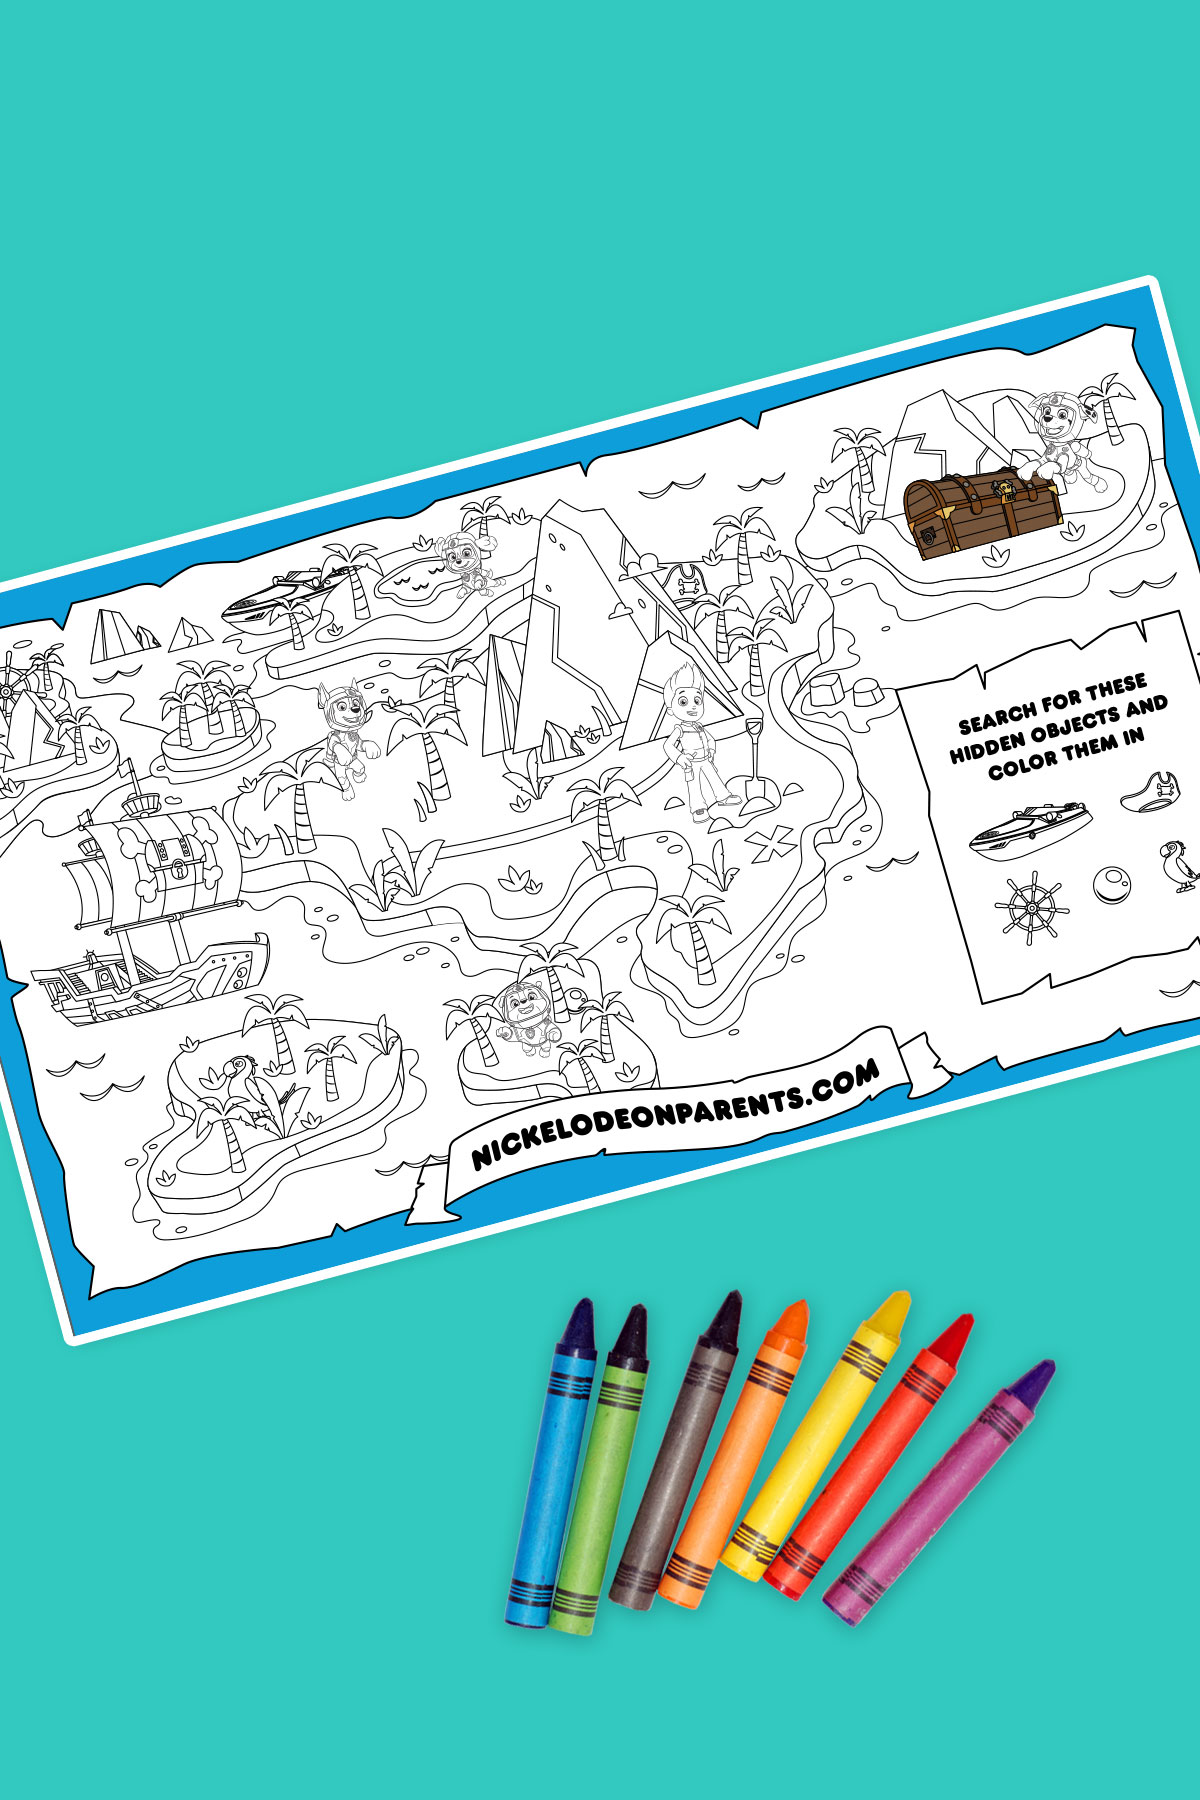 photo about Printable Treasure Maps identify Sea Patrol Printable Treasure Map Nickelodeon Moms and dads